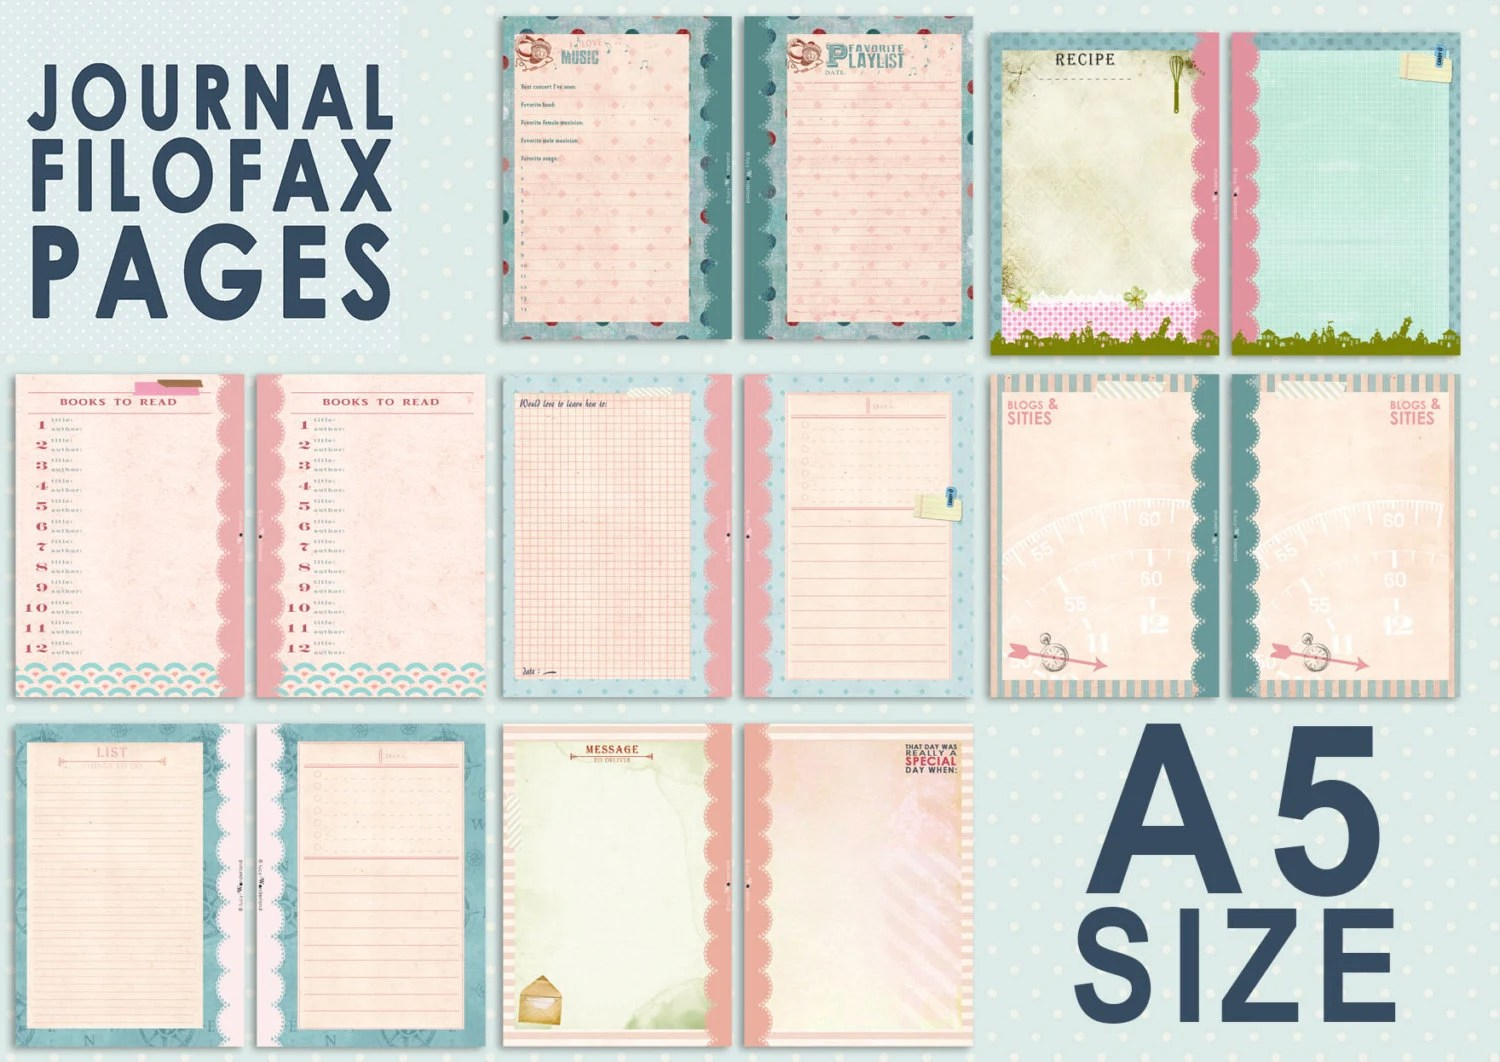 Filofax Personal Einlagen Printable Journal Pages For Filofax A5 Size